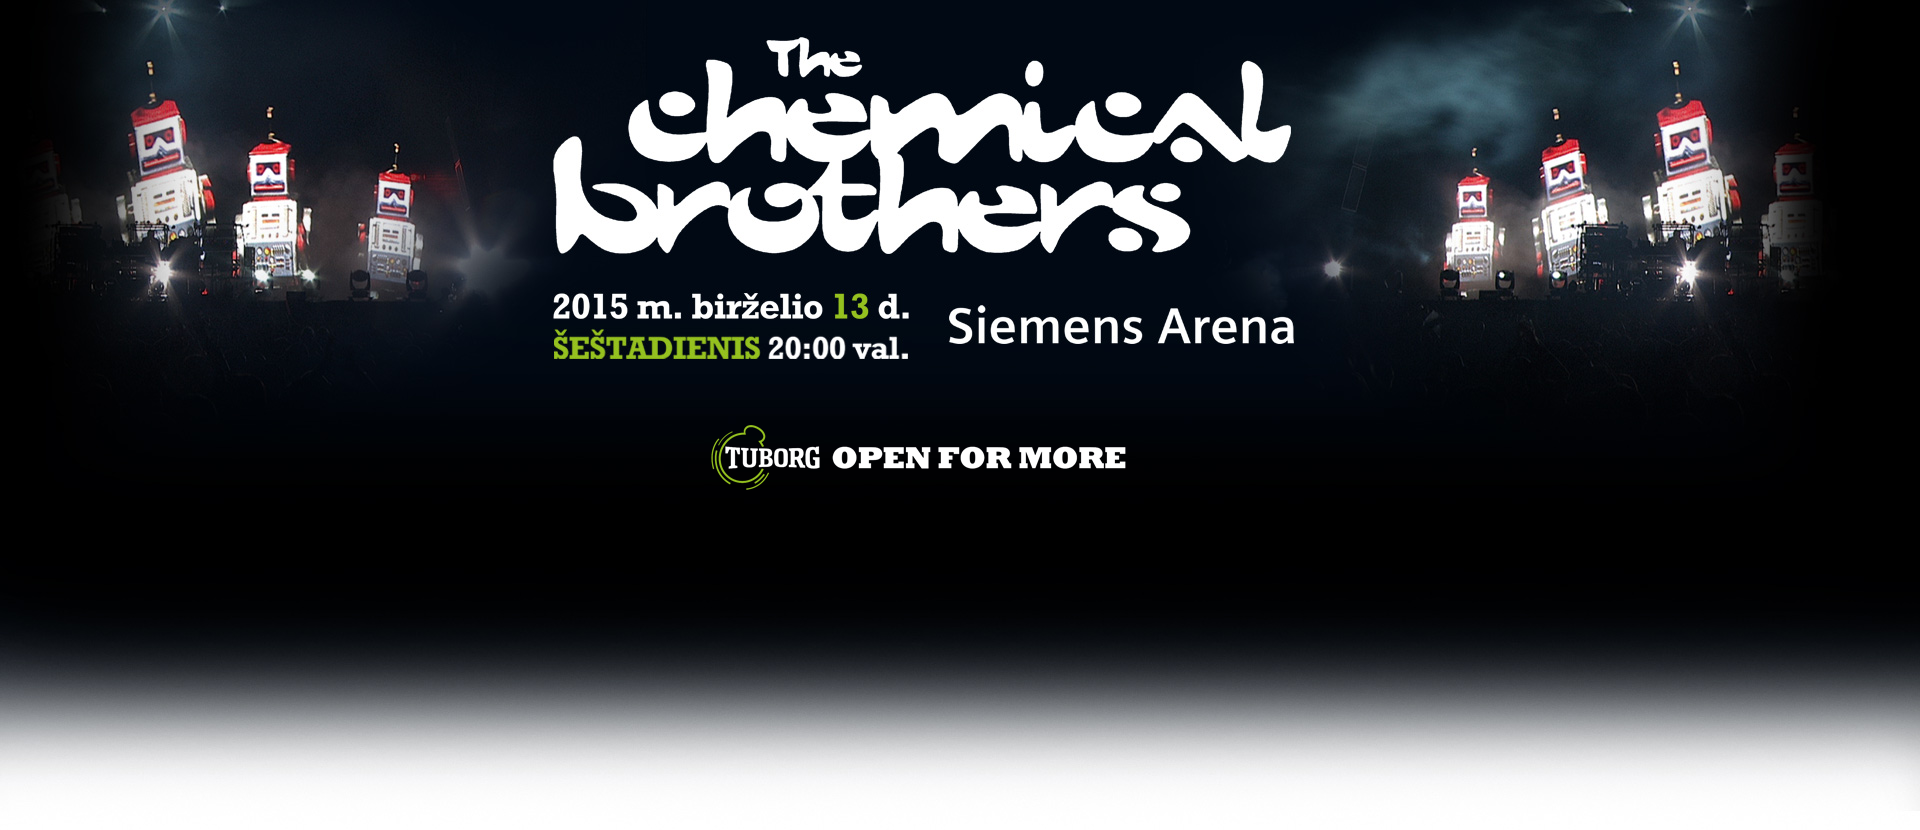 THE CHEMICAL BROTHERS live!